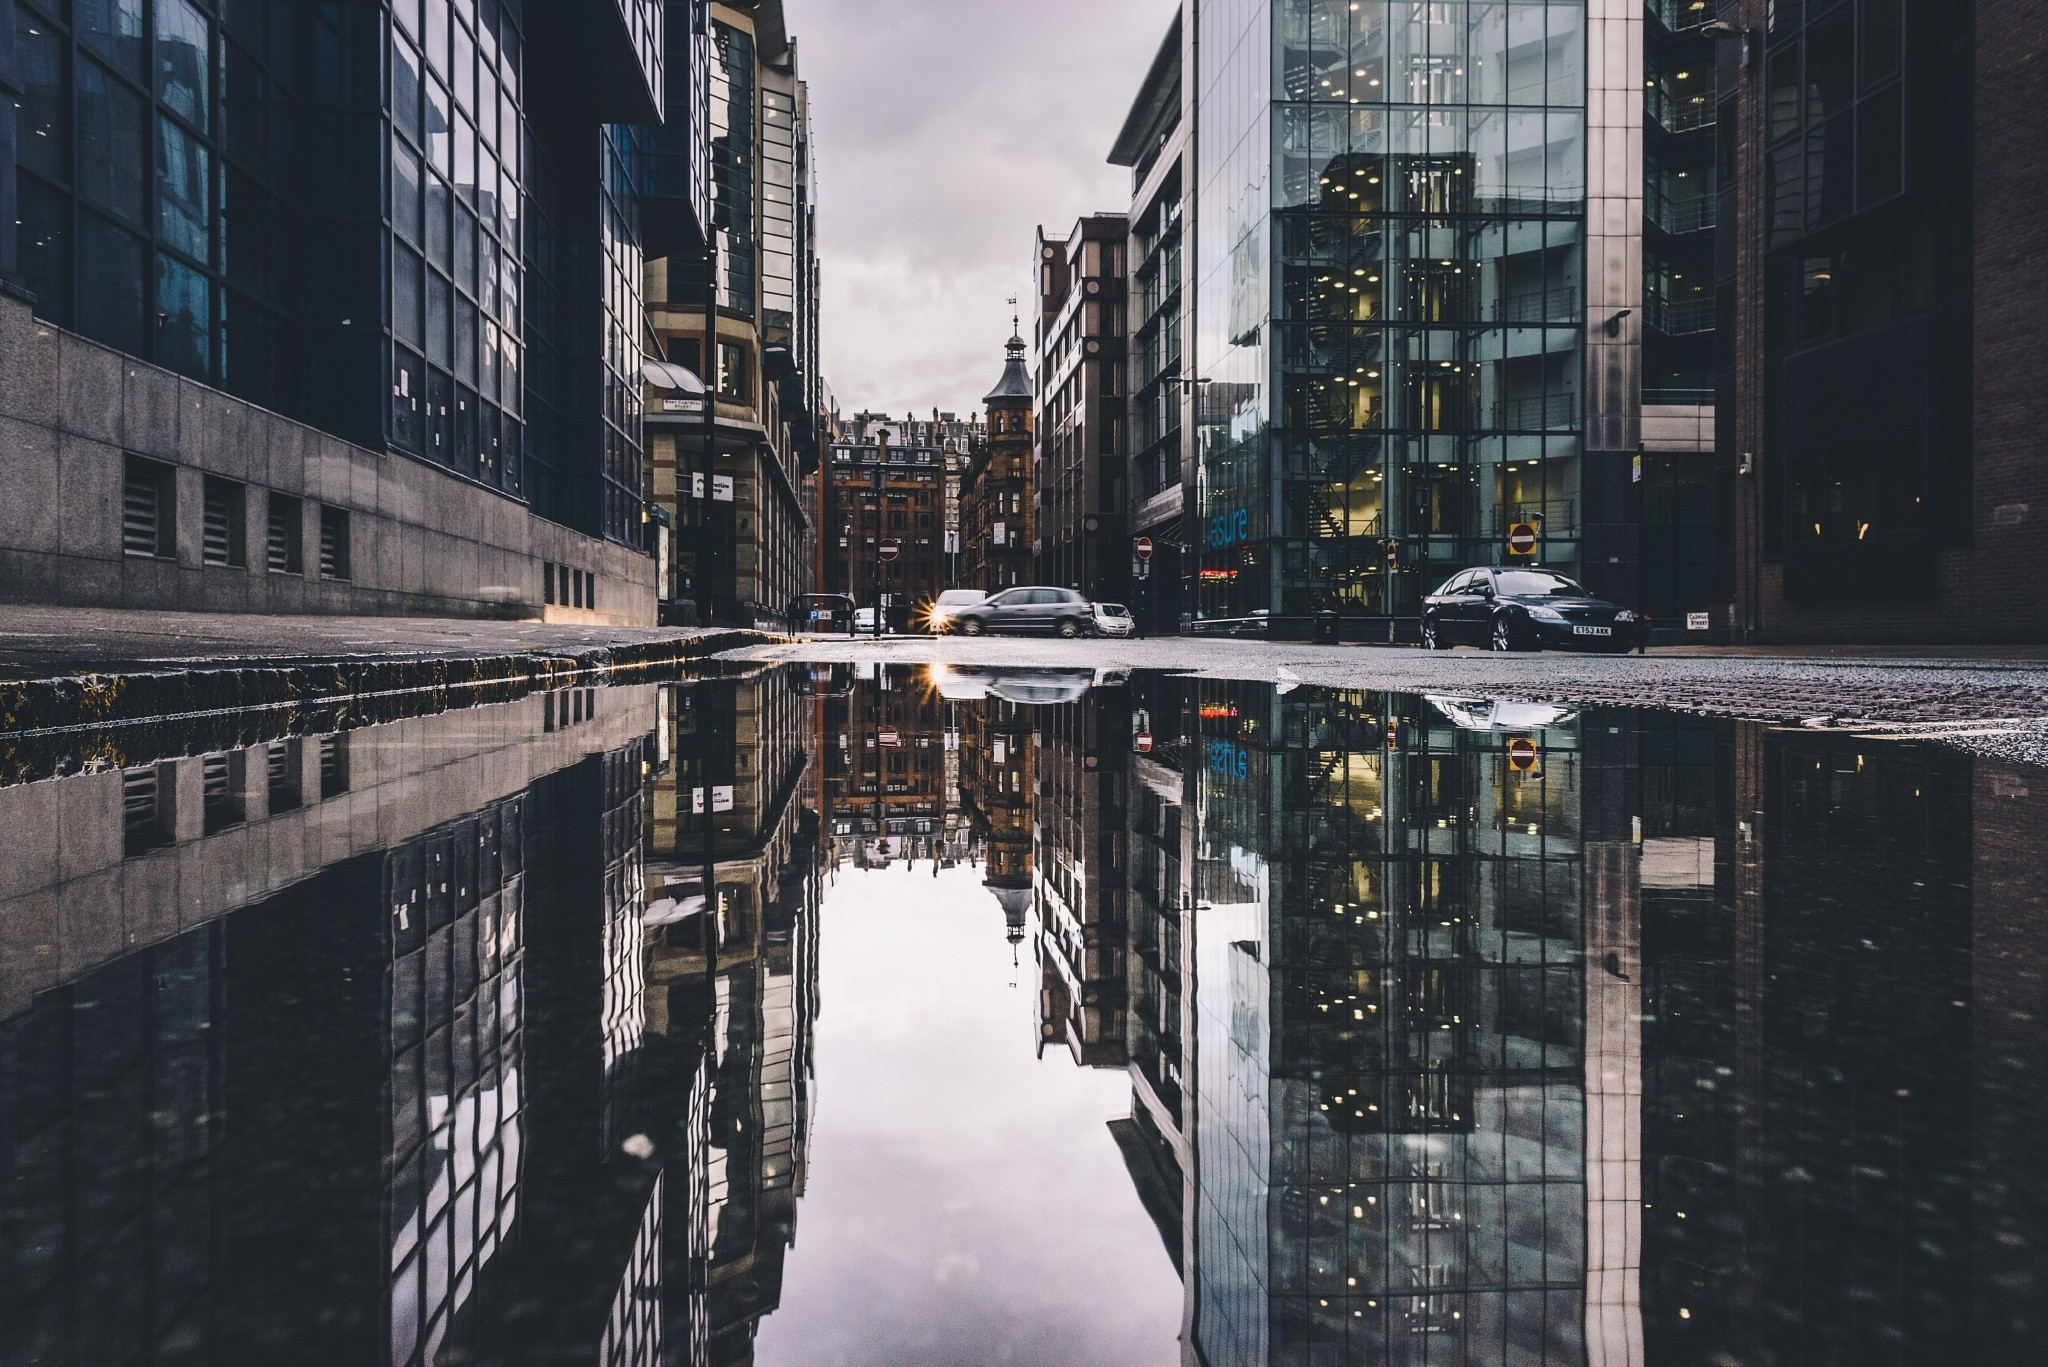 Vintage Car Hd Wallpapers For Pc Urban Cityscape Reflection Car Building City Street